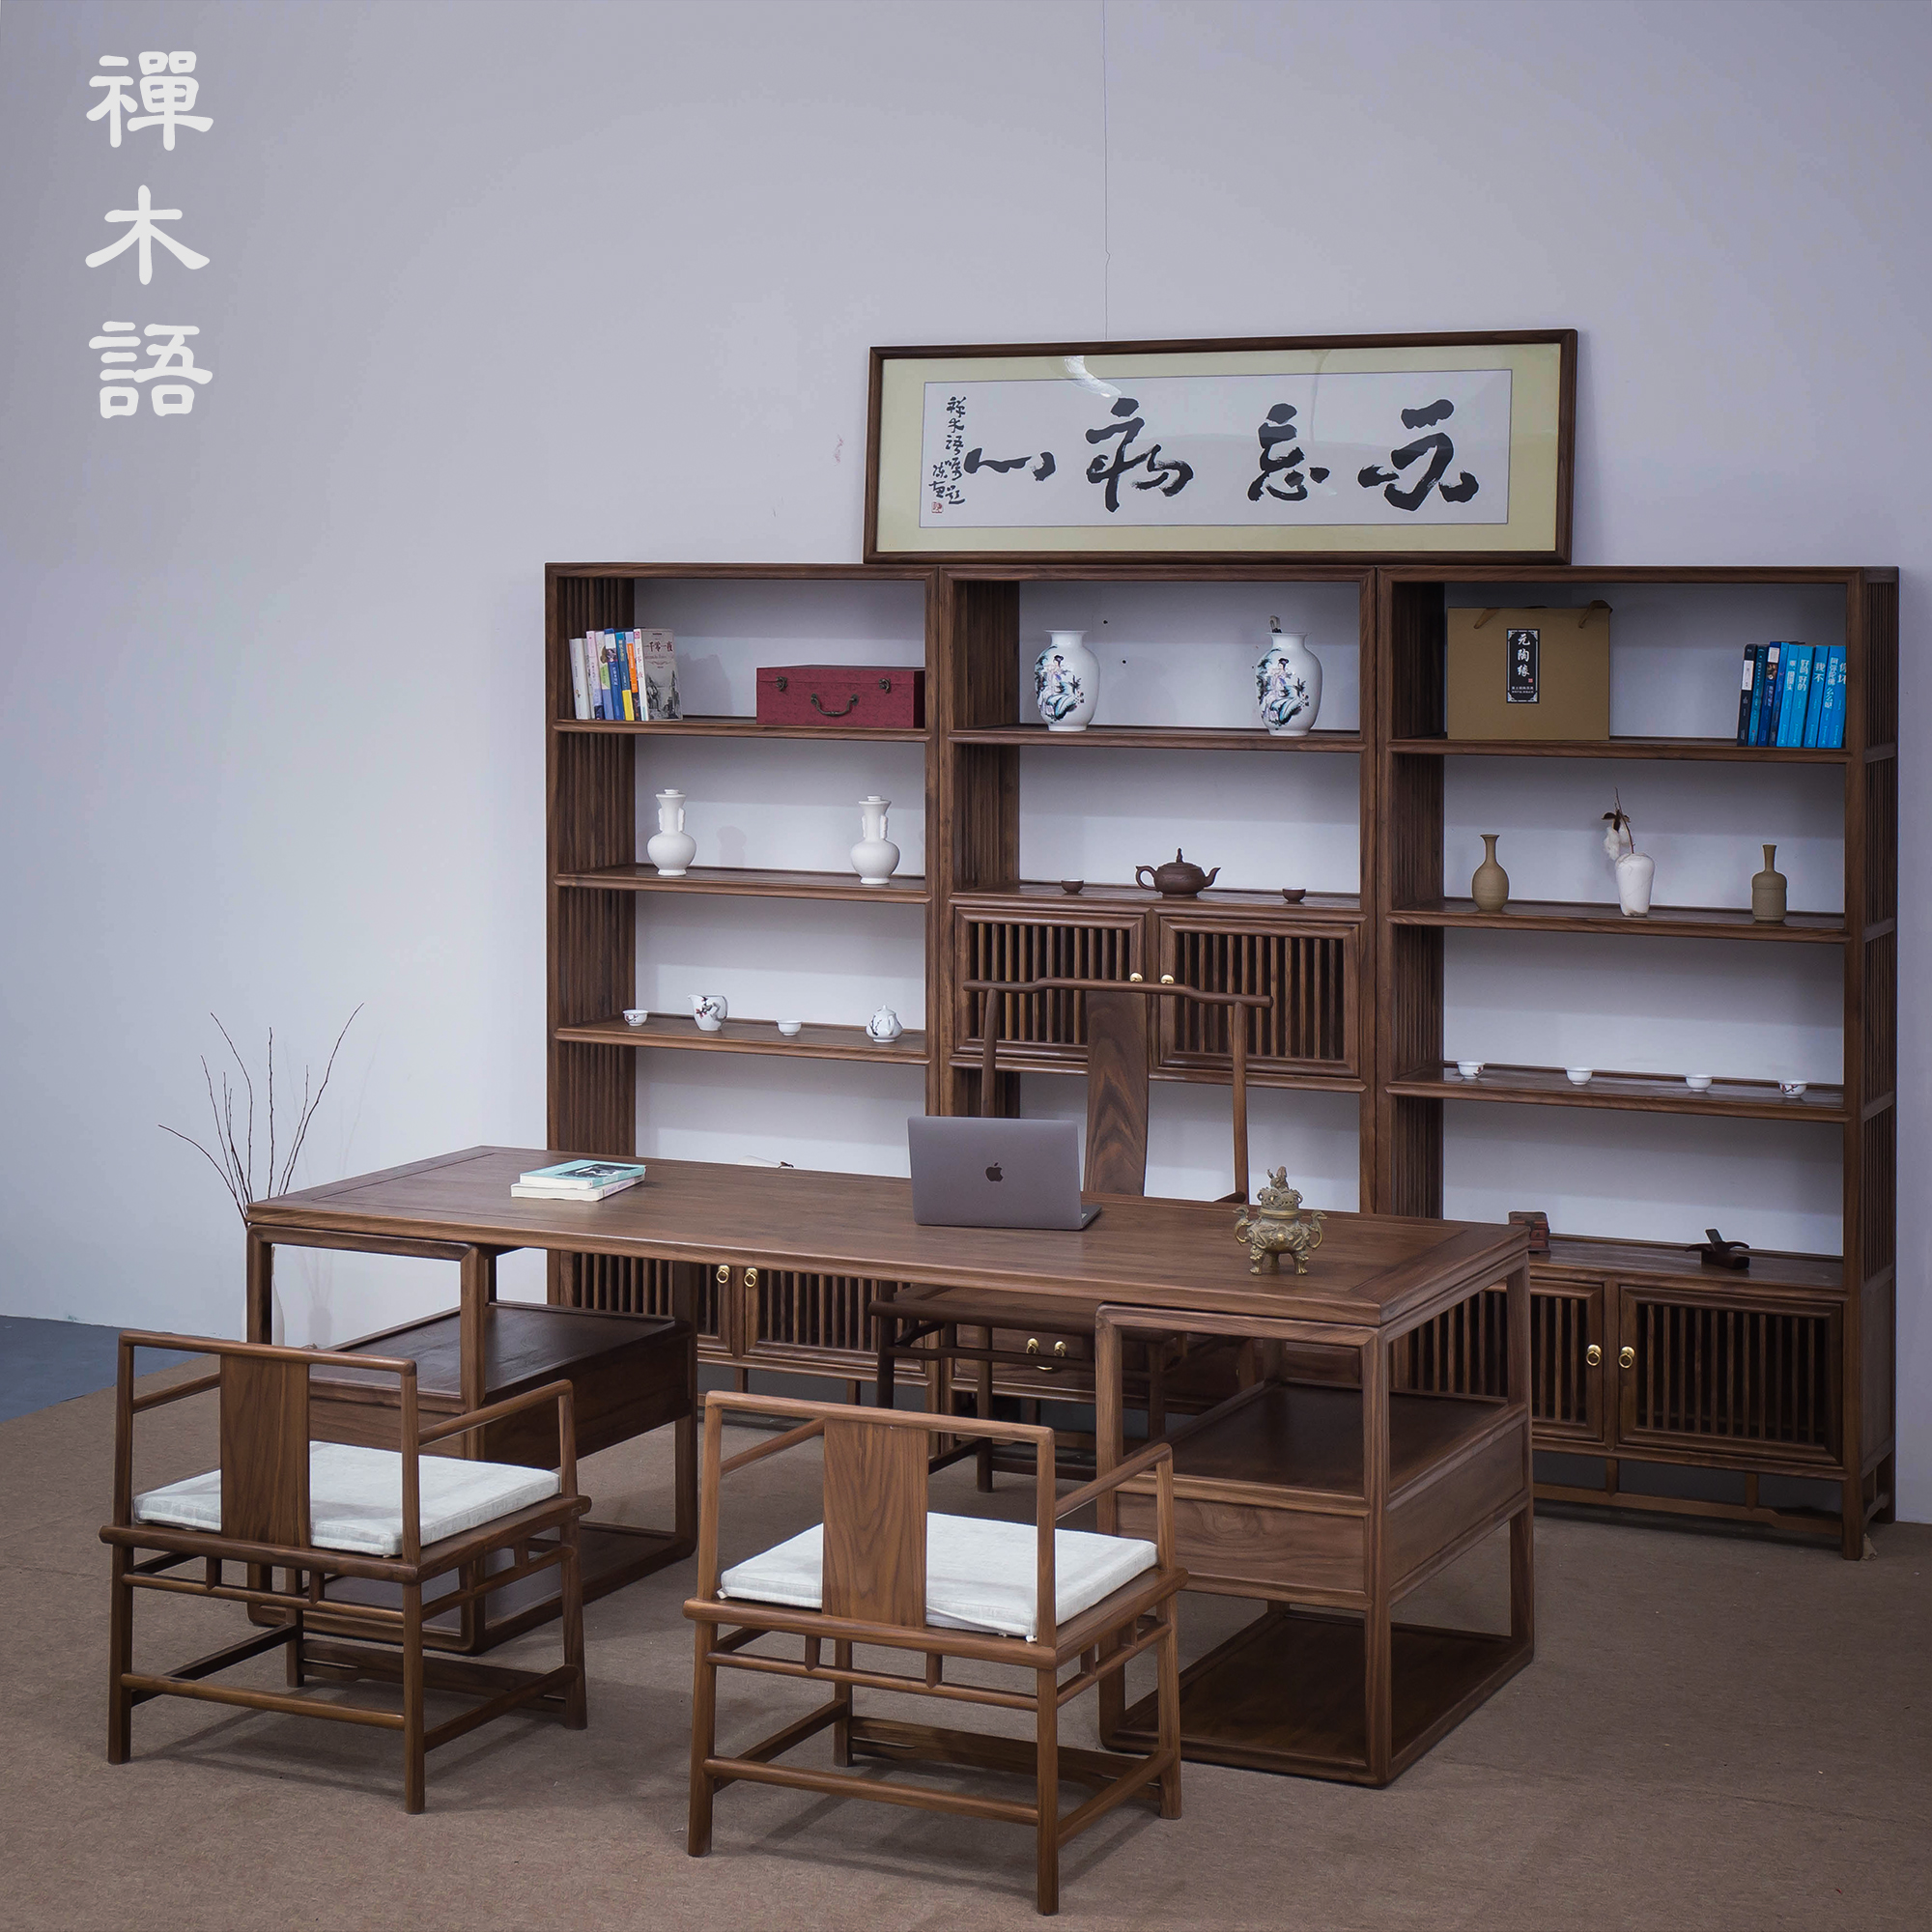 Solid wood mortise and tenon desk Painting New Chinese calligraphy Desk Black Walnut desk desk study Ming style furniture